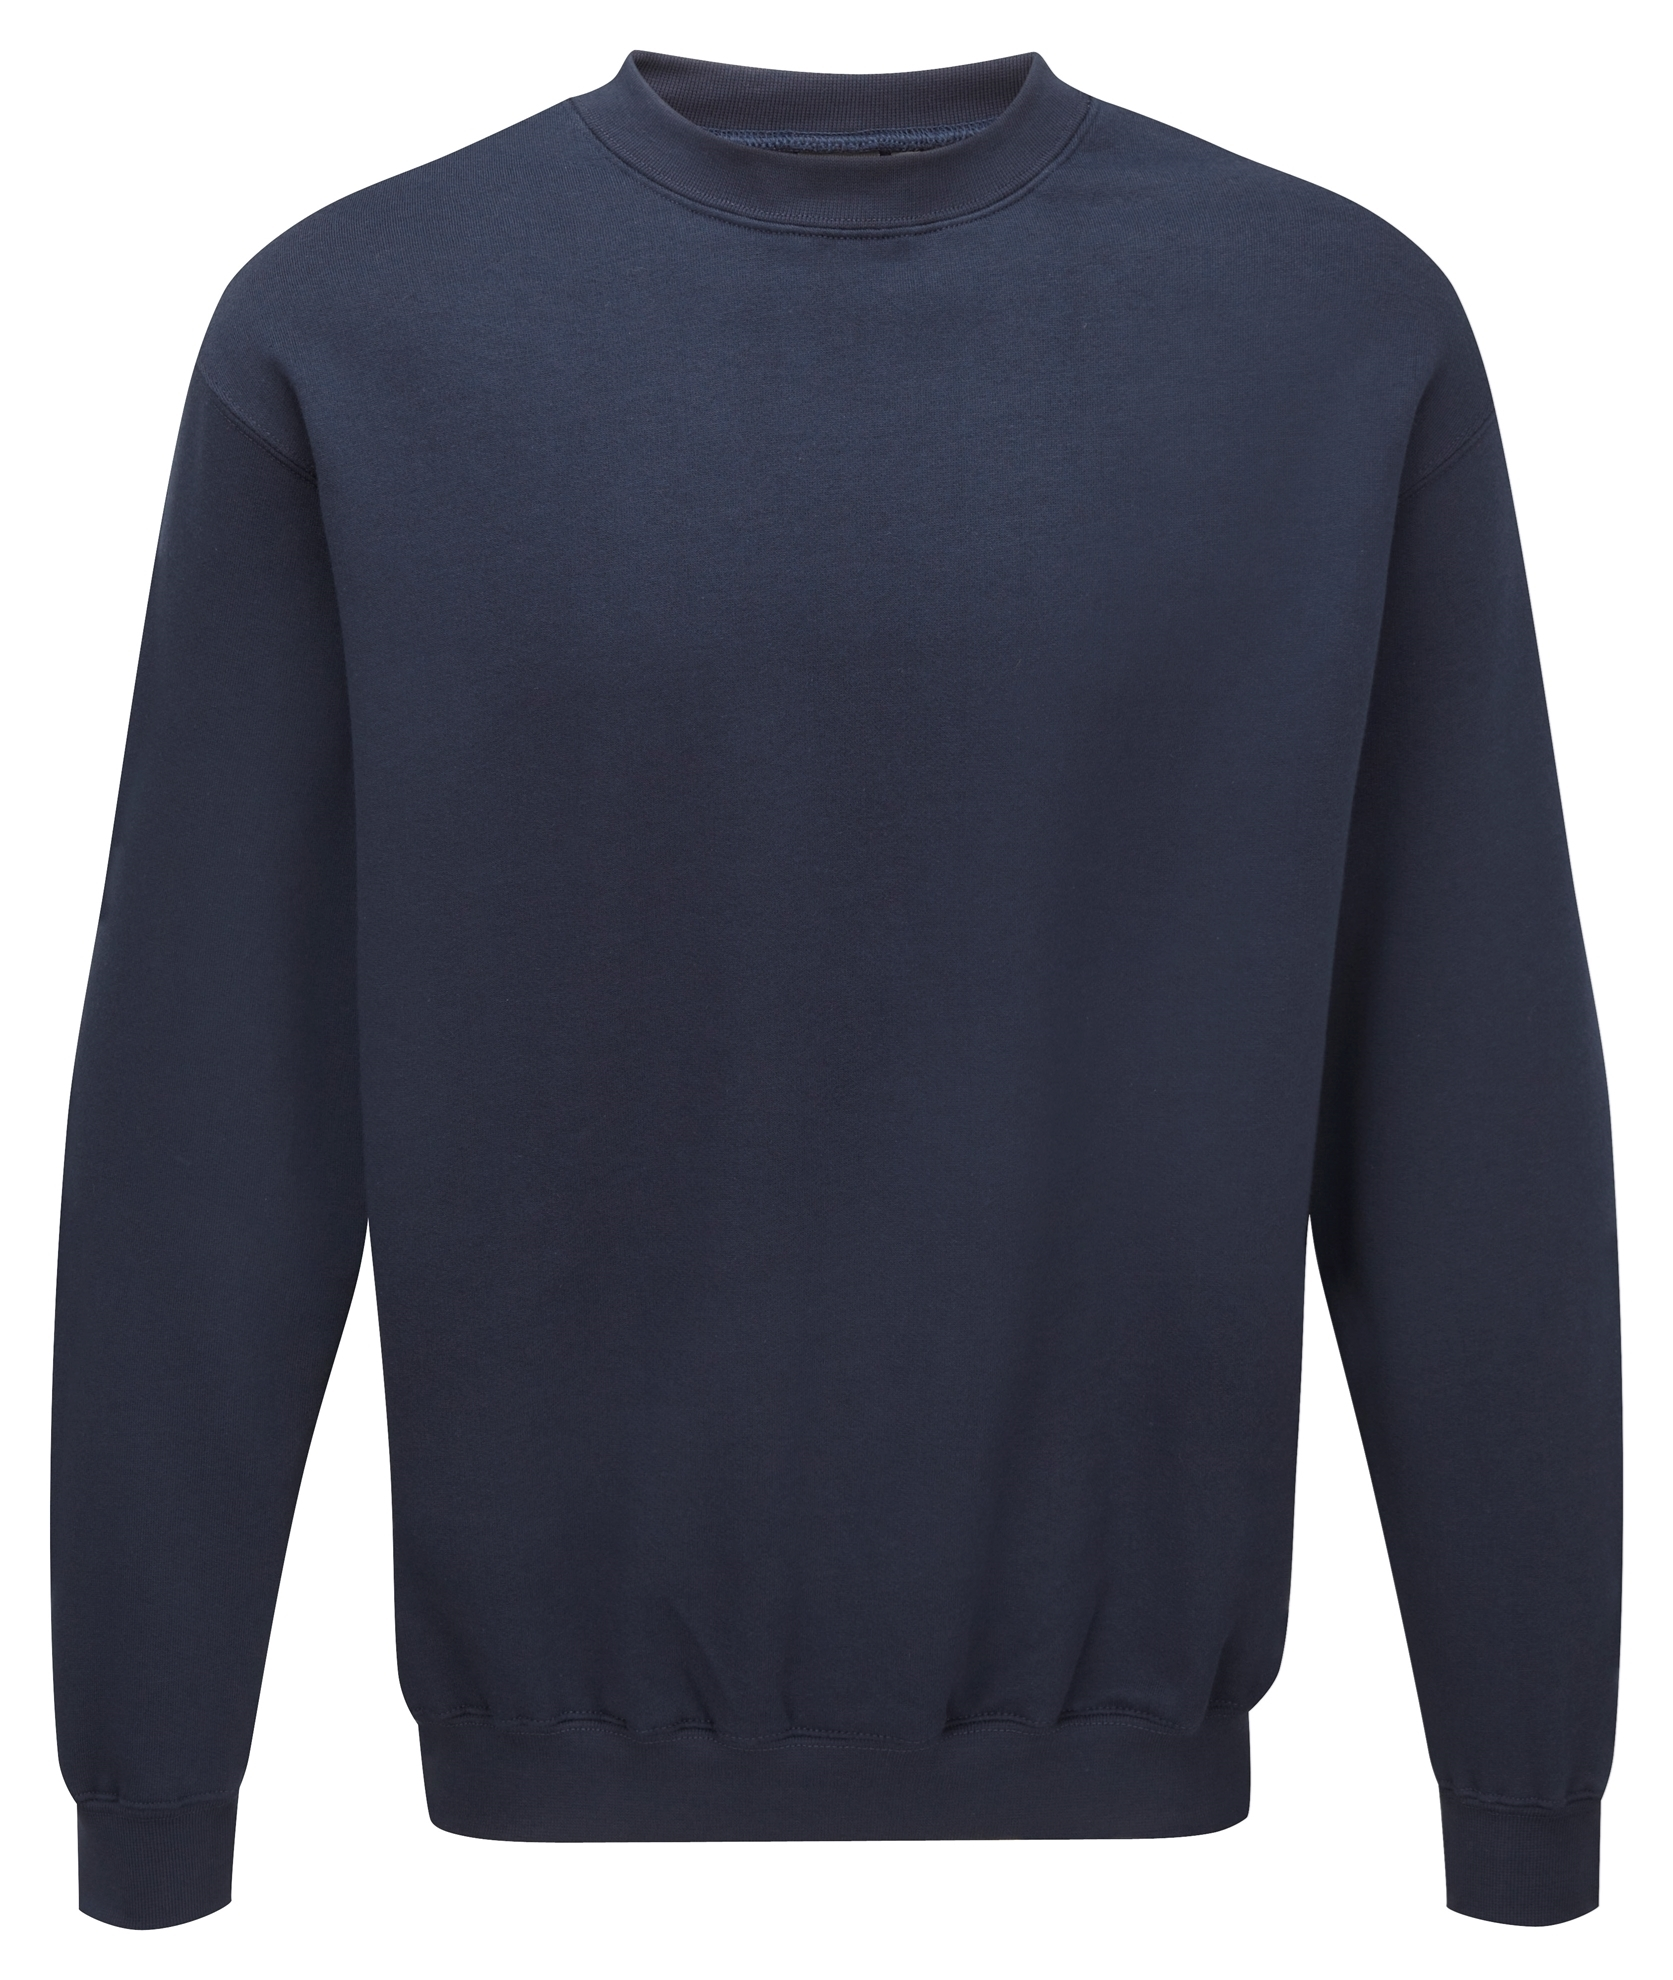 Picture of Sweatshirt - Navy